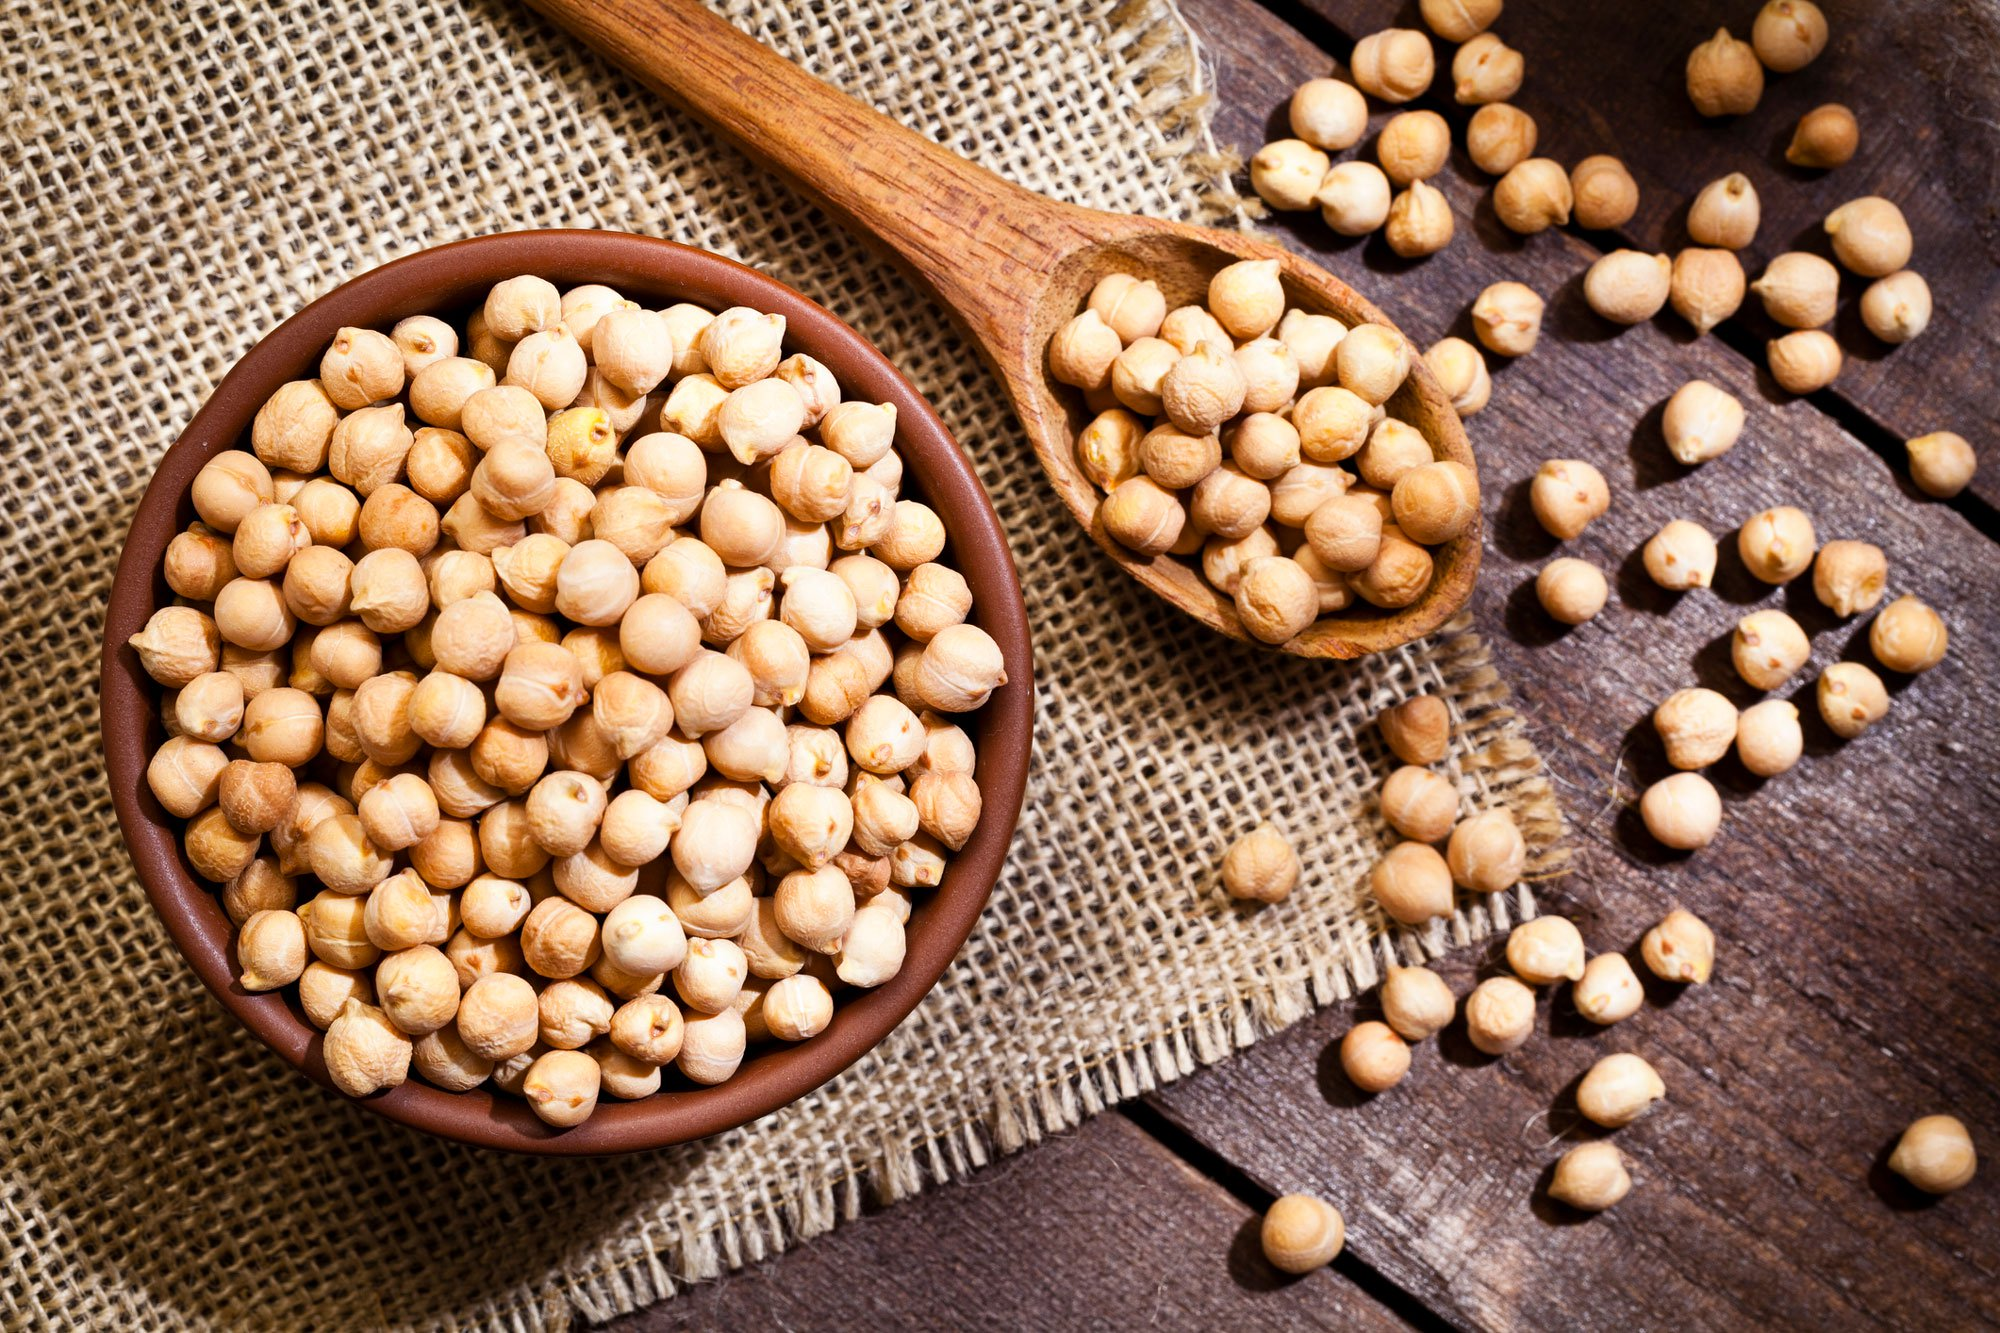 chickpeas in a bowl and wooden spoon